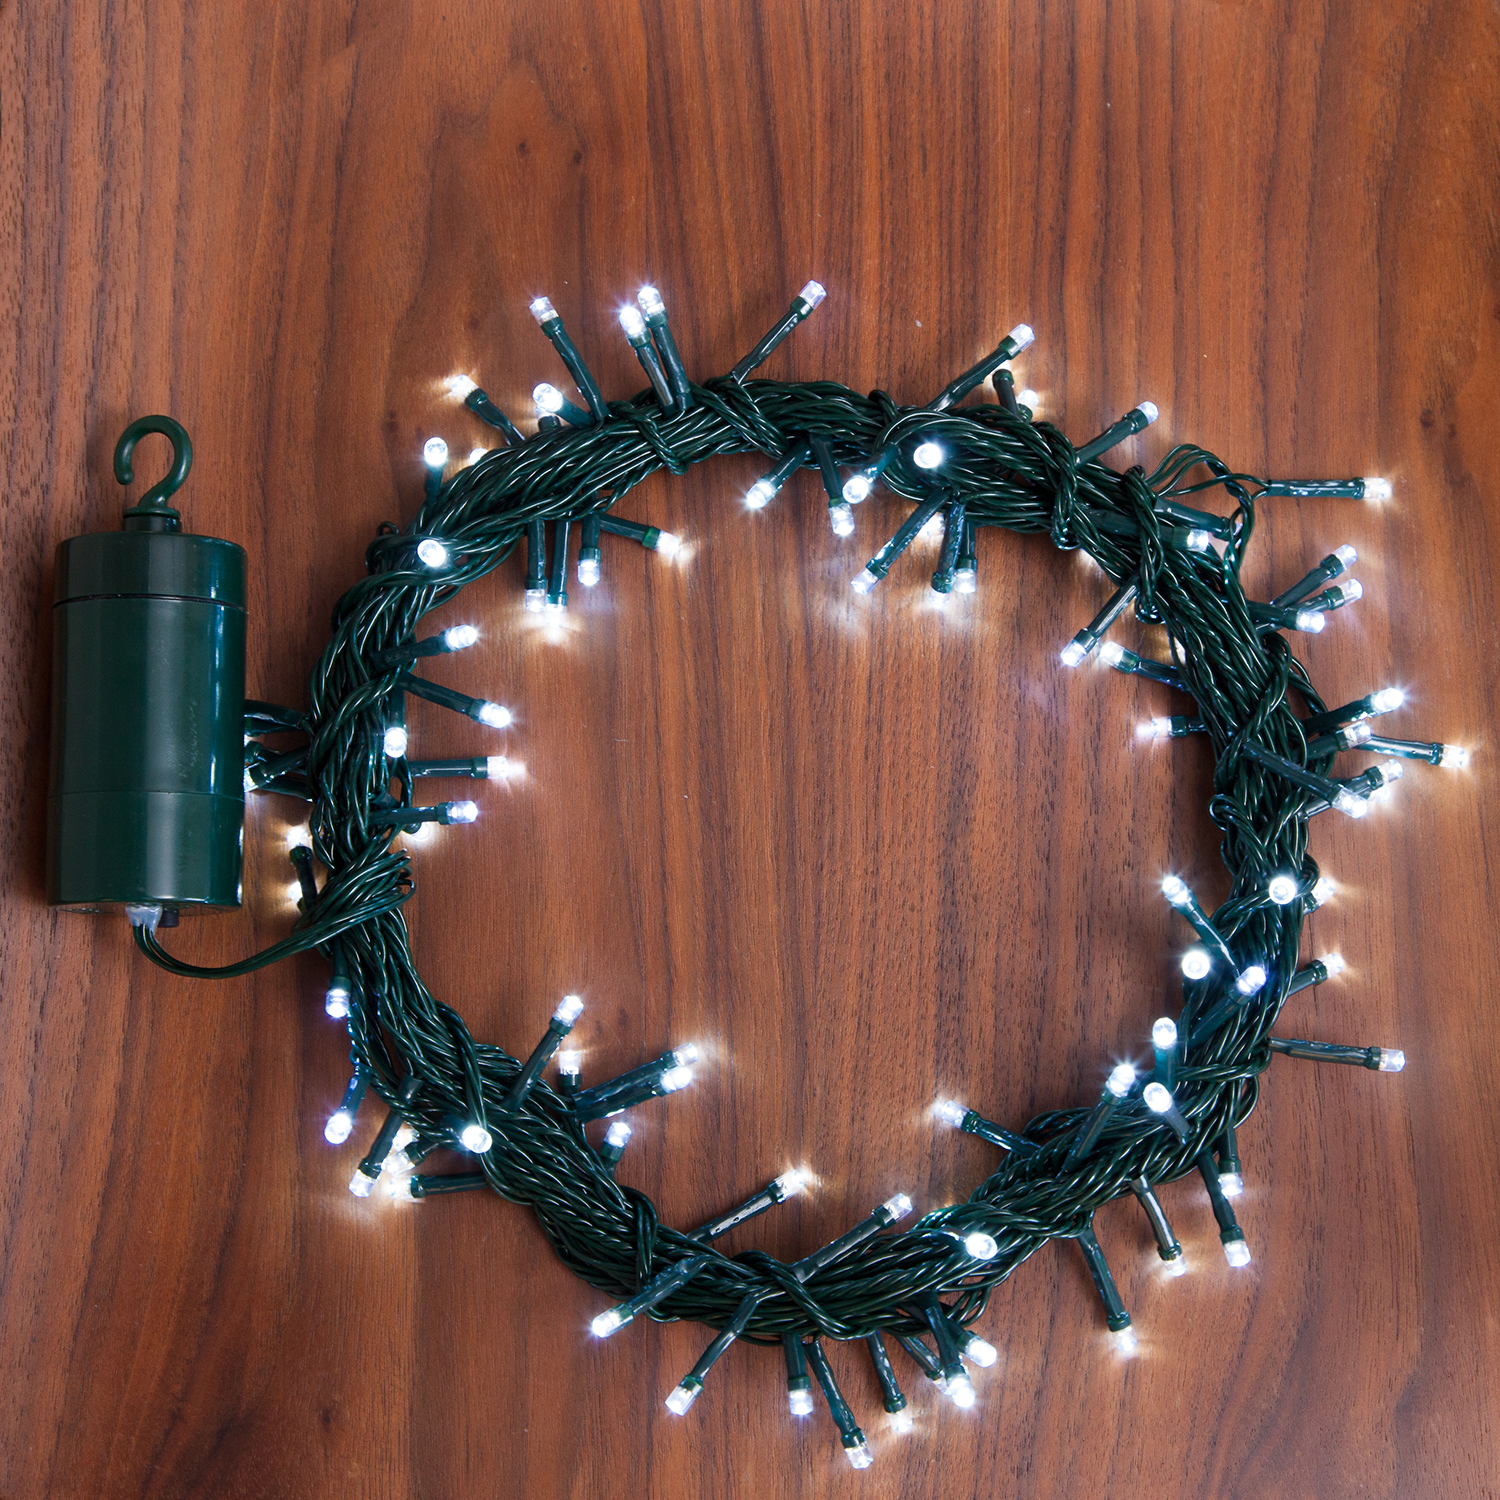 Lights.com String Lights Christmas Lights Cool White 100 LED Battery String Lights with Timer